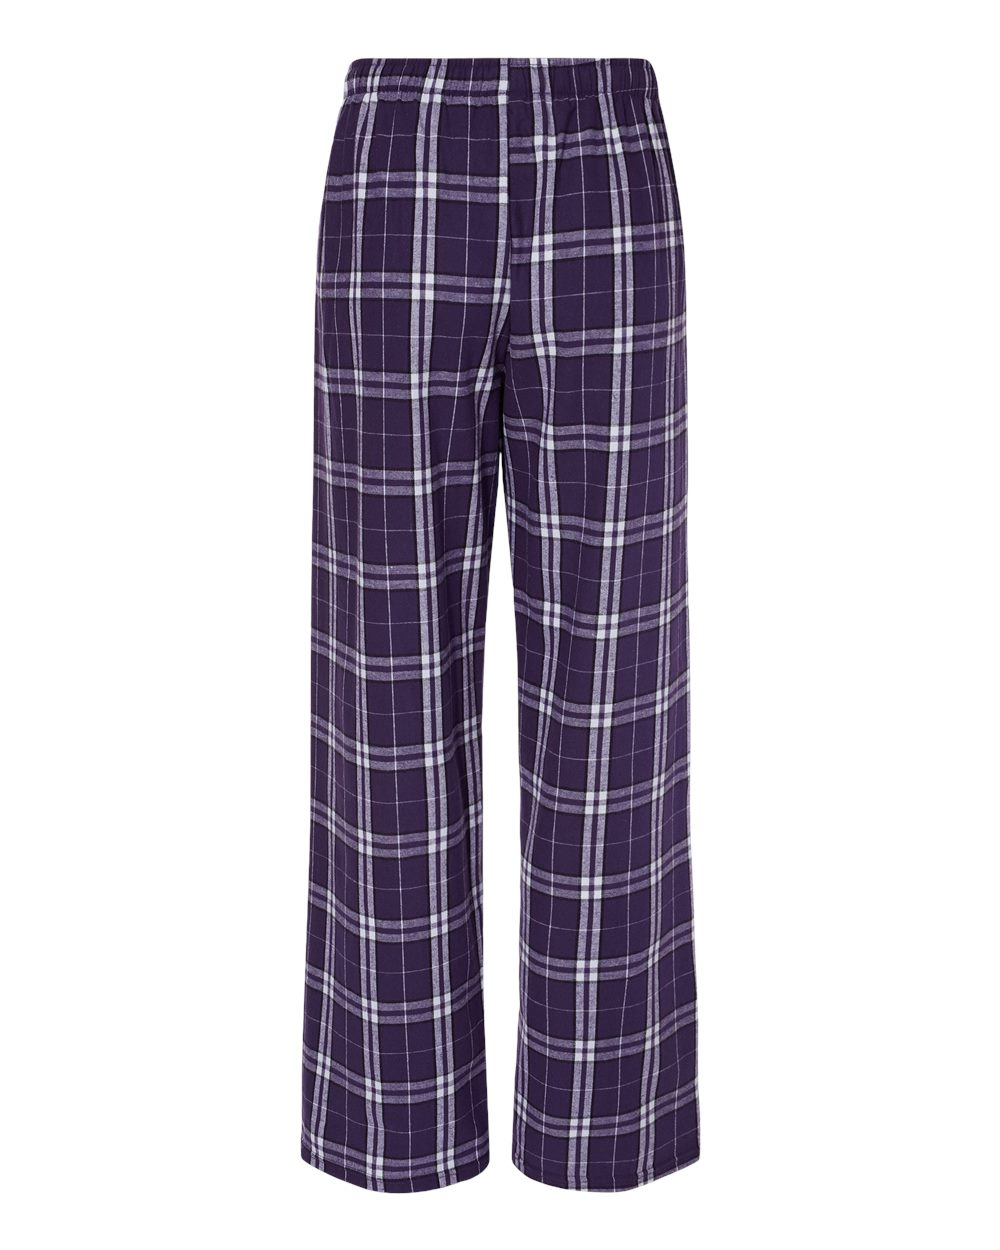 Boxercraft-Unisex-Flannel-Pants-With-Pockets-Pajama-Pants-F20-up-to-2XL thumbnail 37